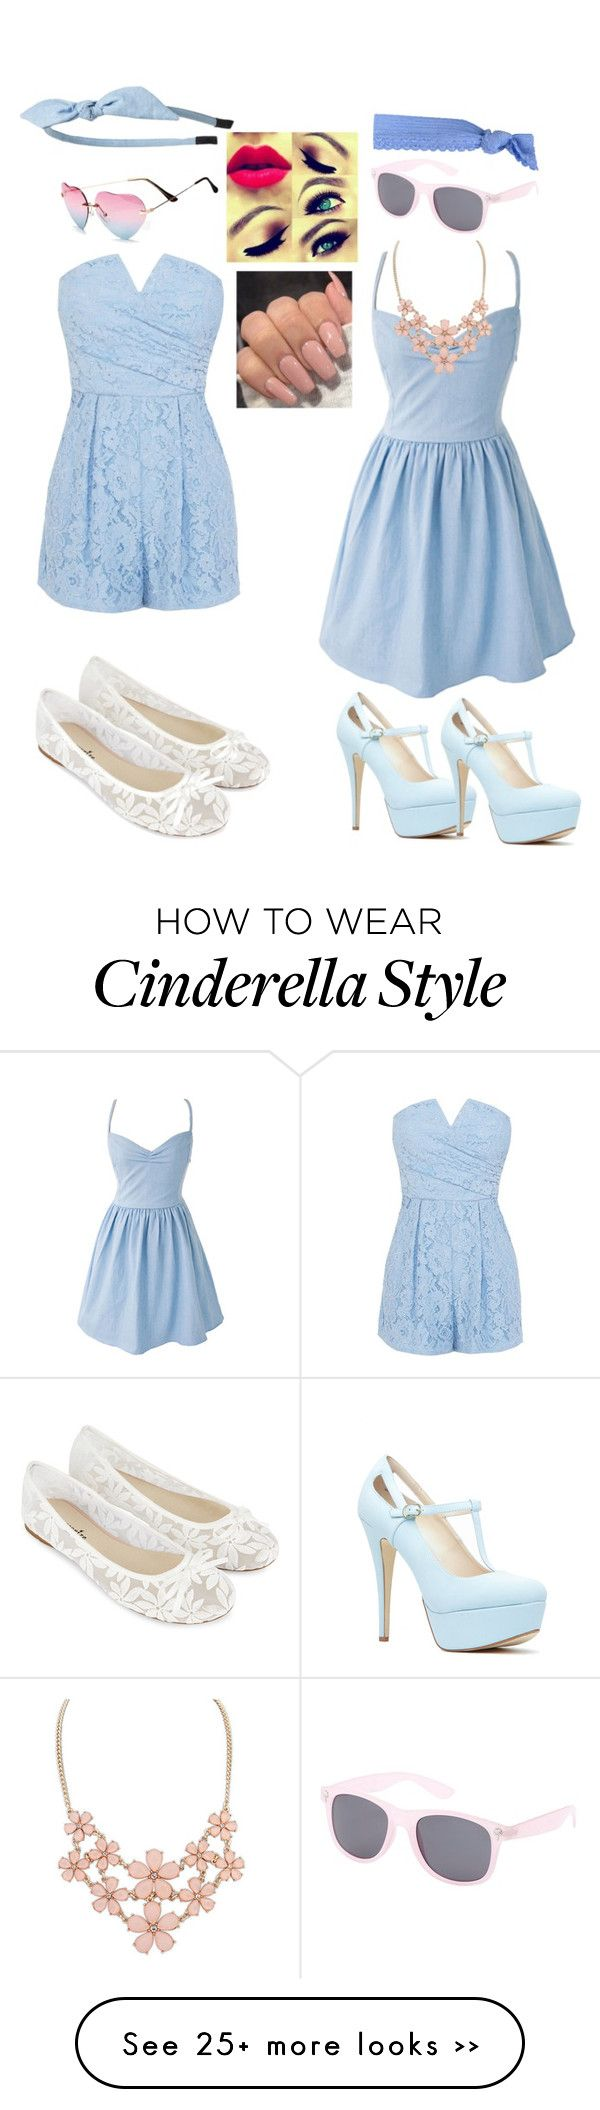 """""""Modern Day Cinderella"""" by hswalker on Polyvore featuring Coast, Cara, Accessorize, Glam Bands, Charlotte Russe and modern"""